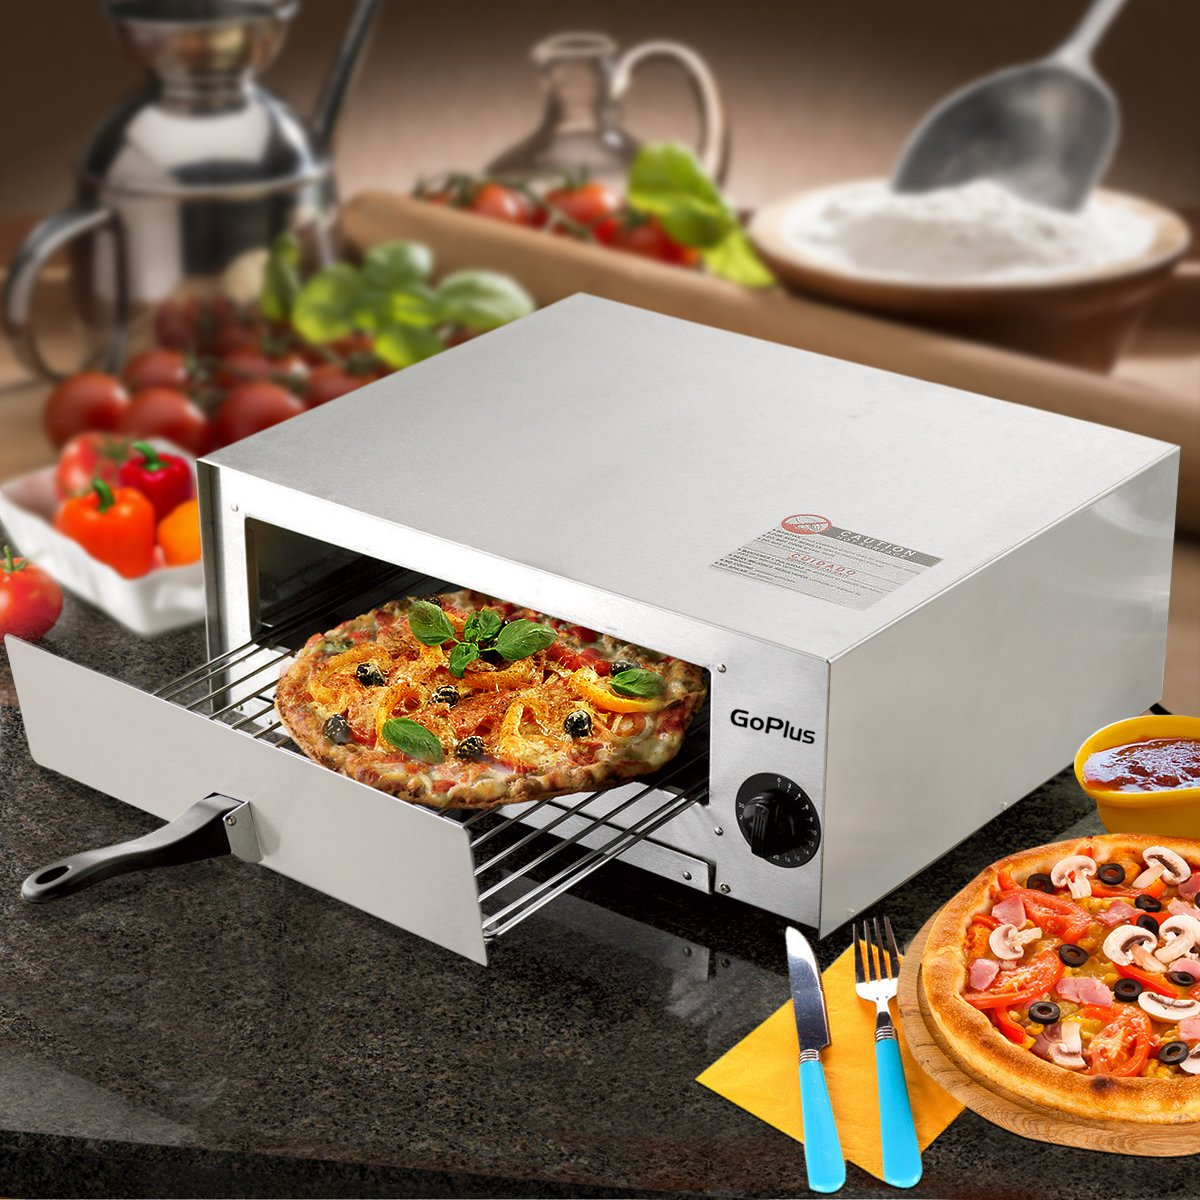 Goplus Pizza Oven, Stainless Steel Pizza Maker Machine, Pizza Baker W/Snack Pan, Snack Maker, Counter Top, for Commercial and Home by Goplus (Image #2)